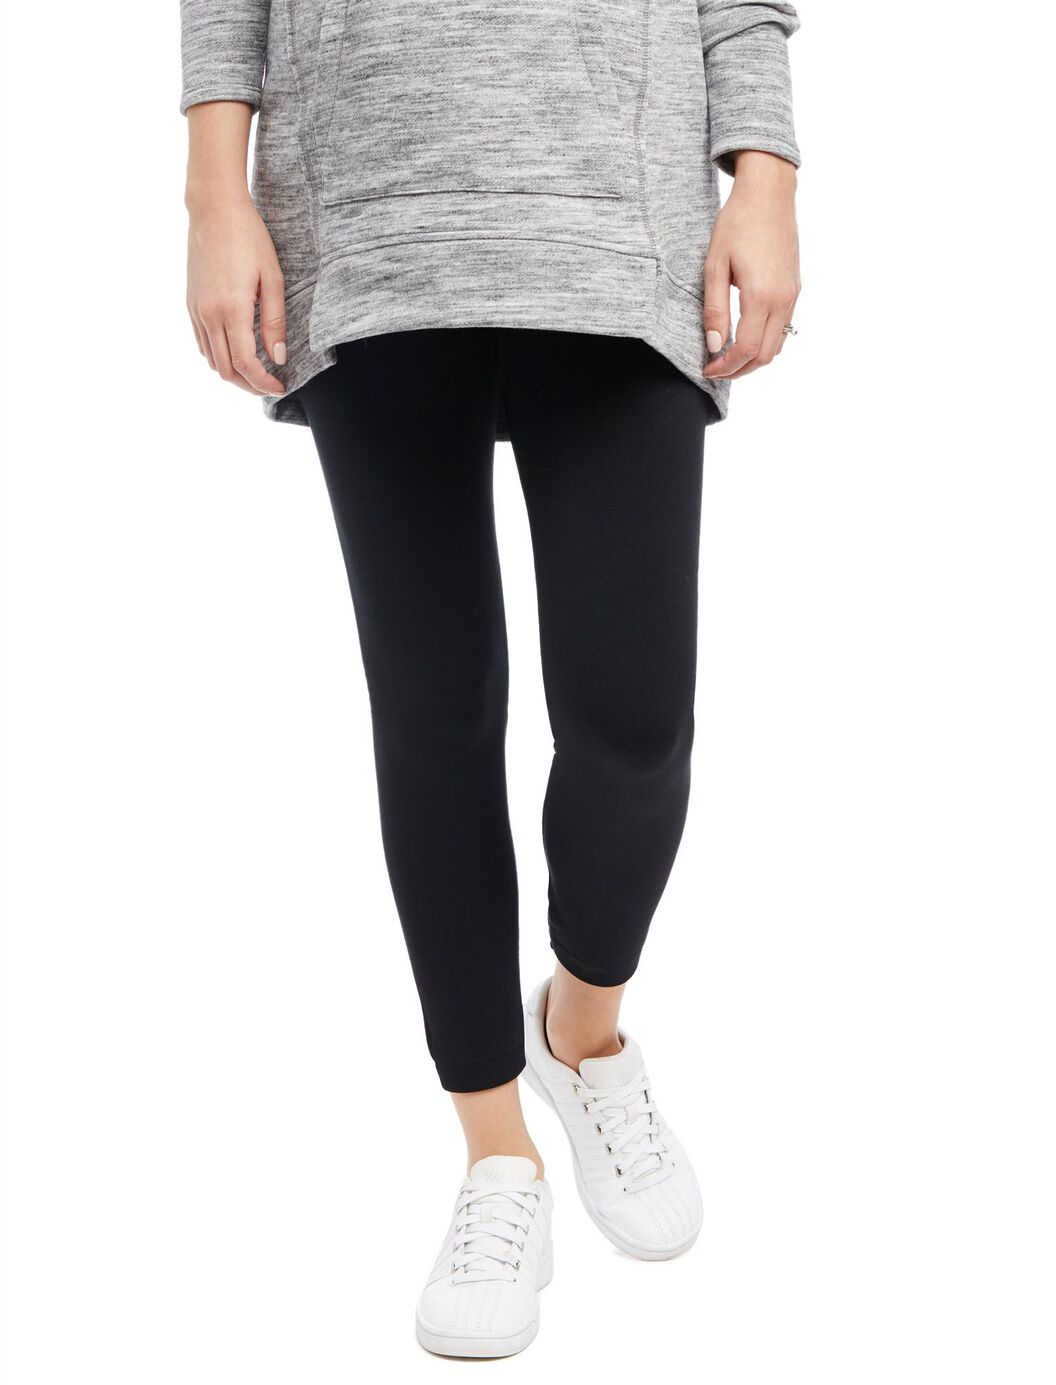 No Belly Belly Maternity Leggings- Black at Motherhood Maternity in Victor, NY | Tuggl